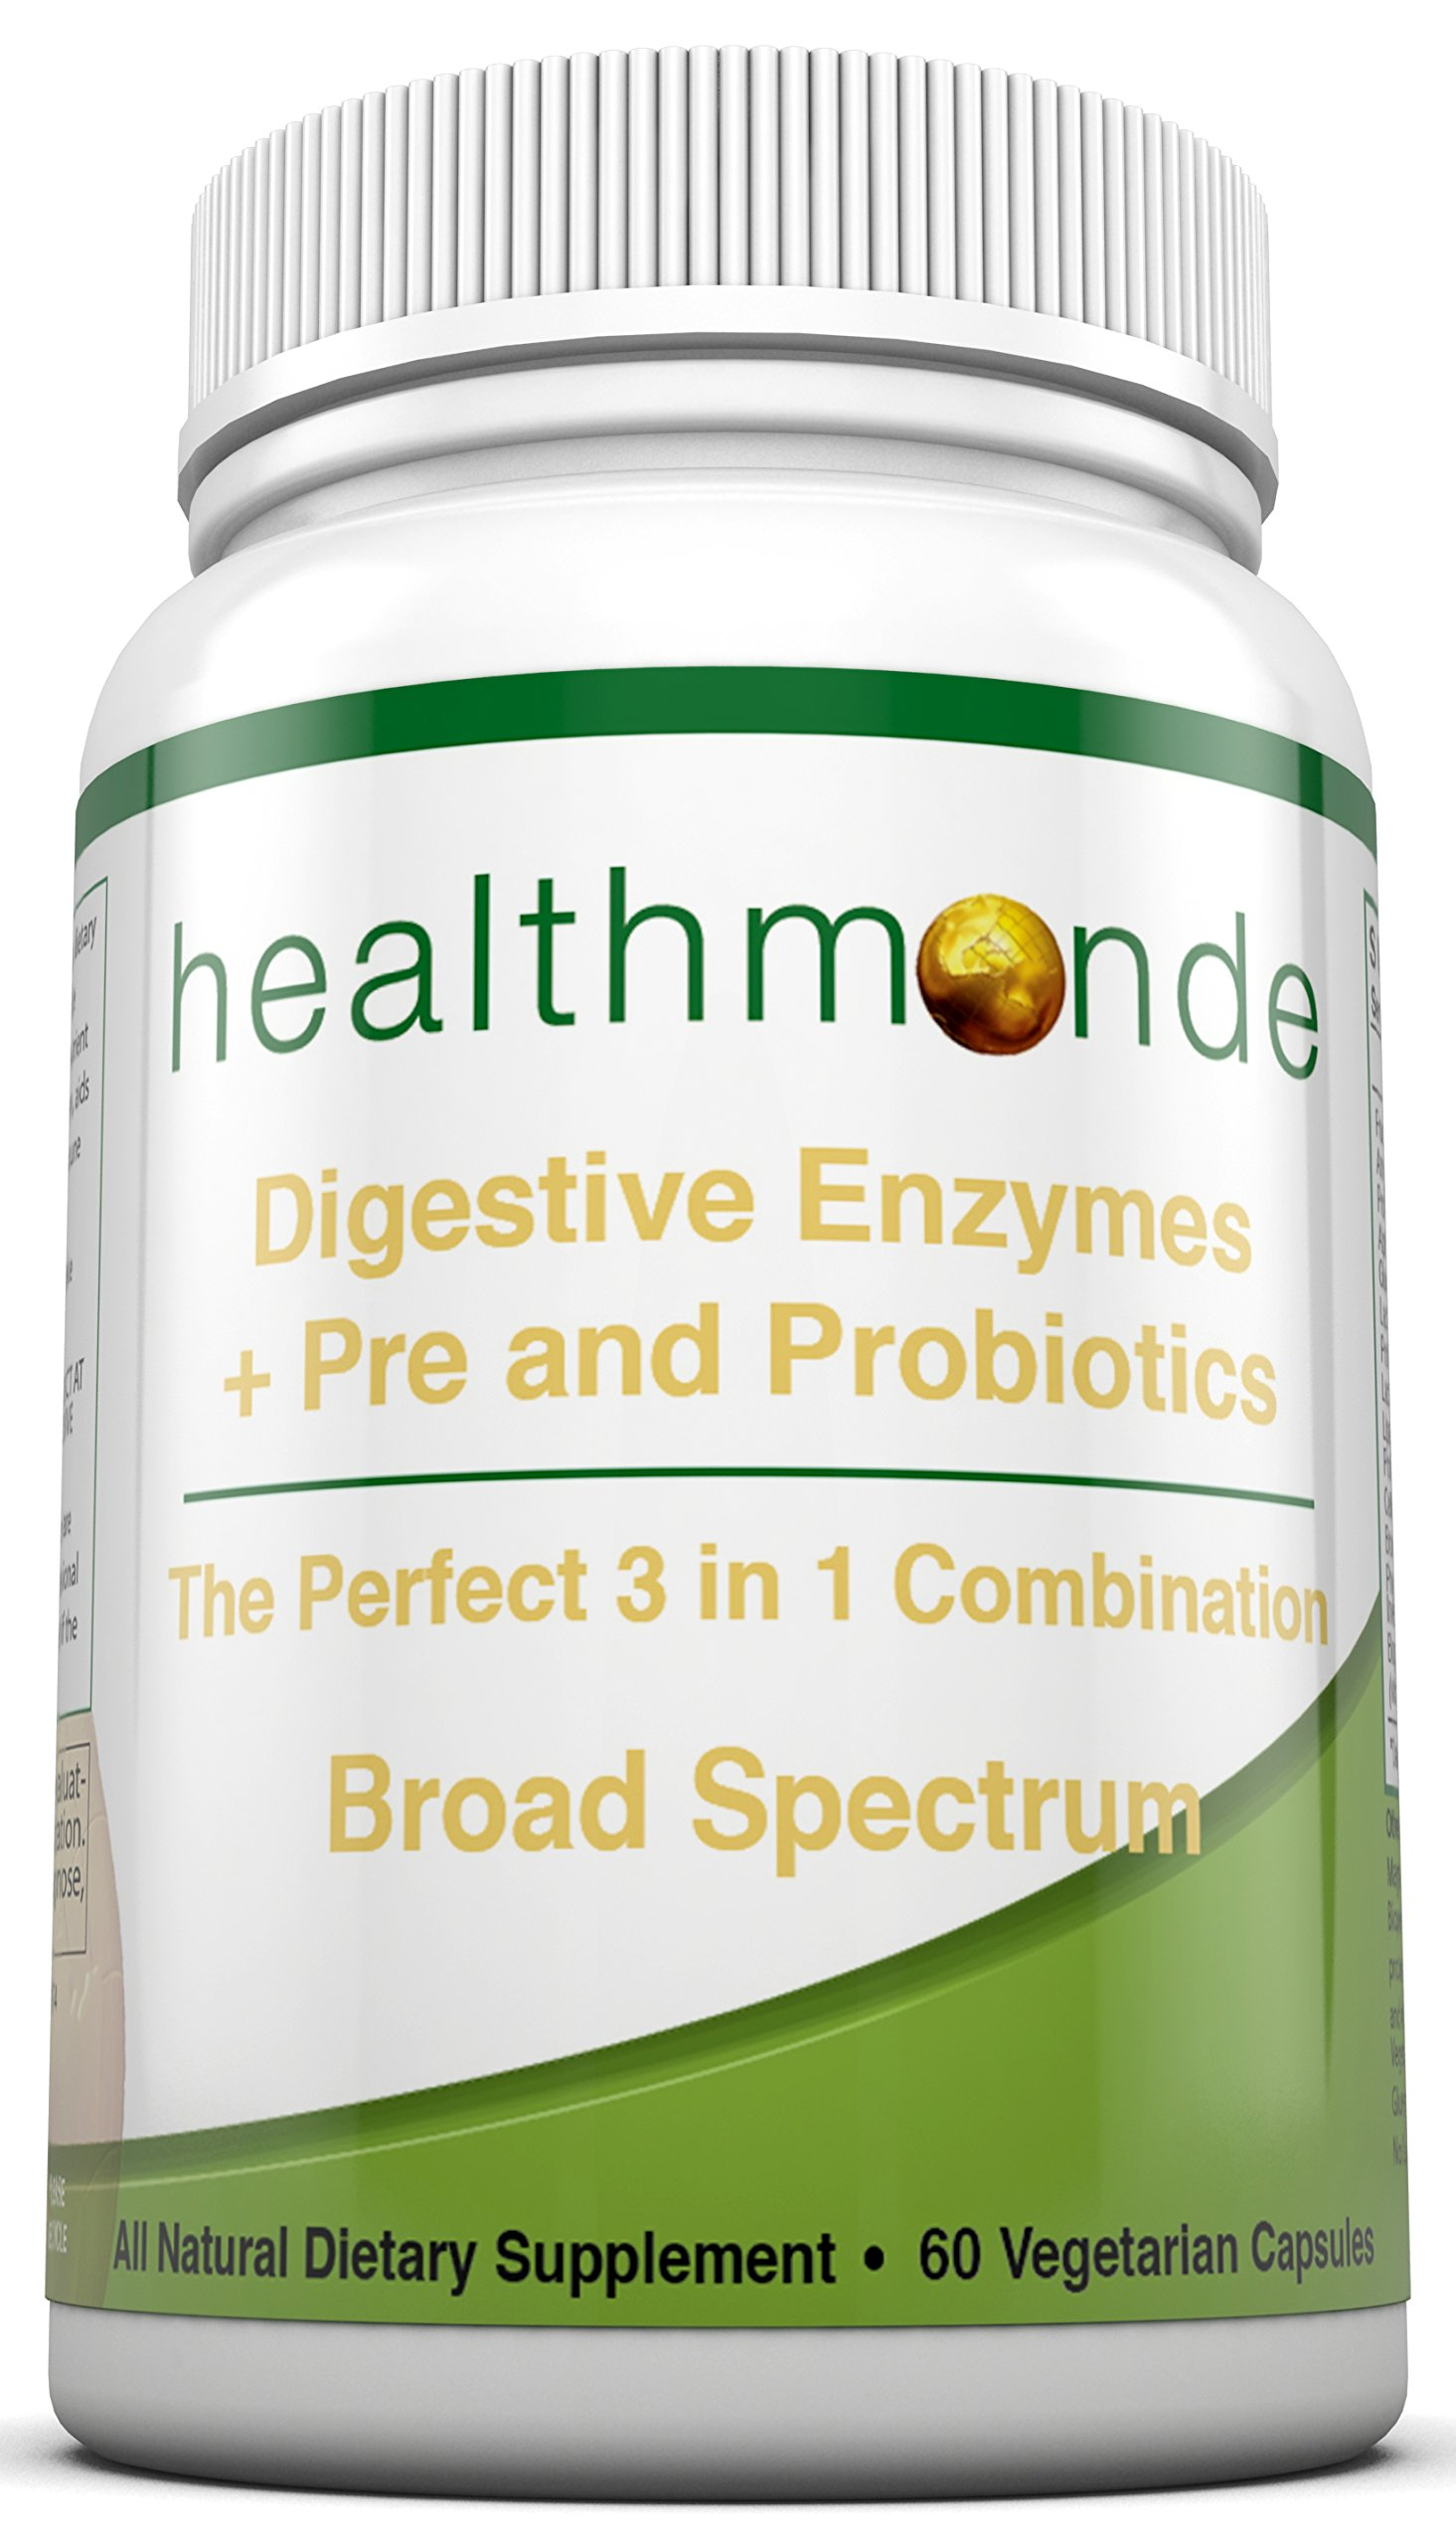 Digestive Enzymes Probiotic and Prebiotic Complex - with Amylase, Bromelain and Lactase - Natural Vegetarian Capsules - Improves Digestion and Absorption - Relieves Gas and Bloating (1) by healthmonde